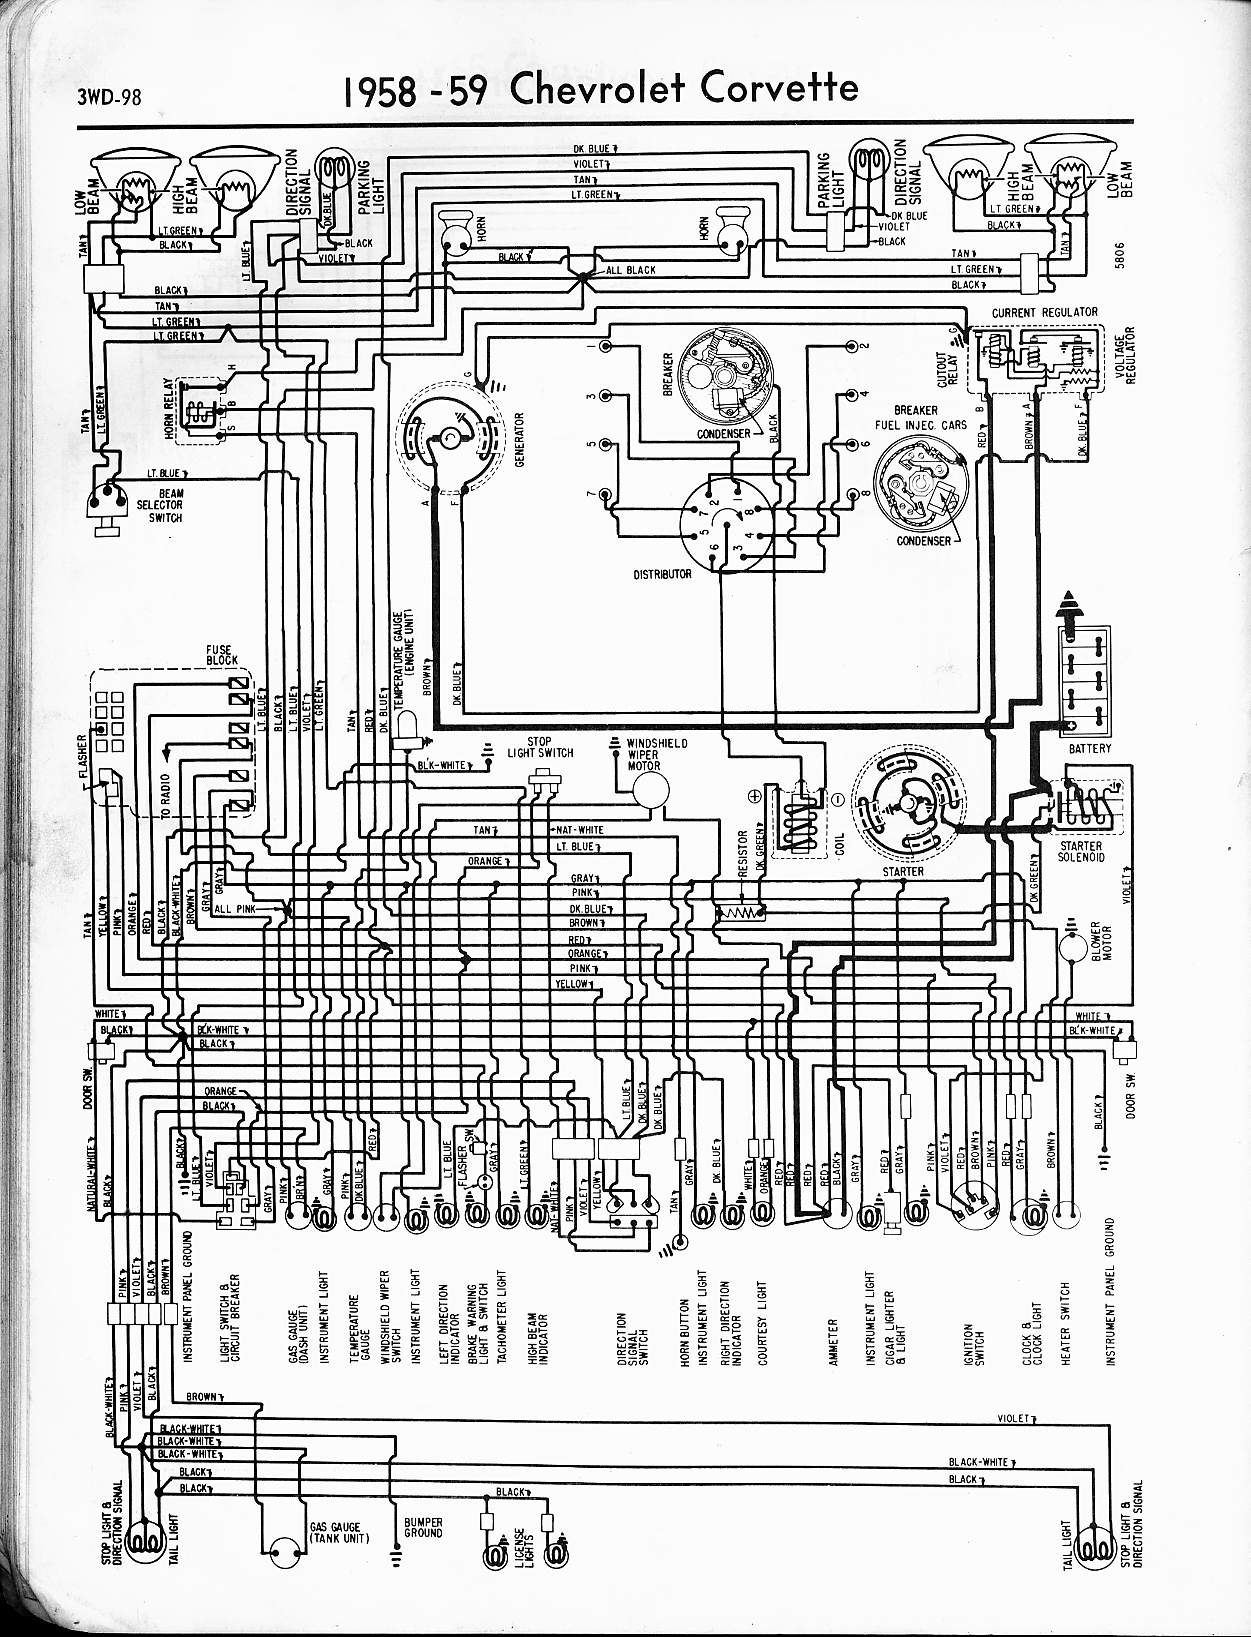 wiring diagram for 1965 chevy truck wiring diagram online Chevy Truck Wiring Harness Standard 57 65 chevy wiring diagrams wiring diagram for 1995 chevy truck wiring diagram for 1965 chevy truck